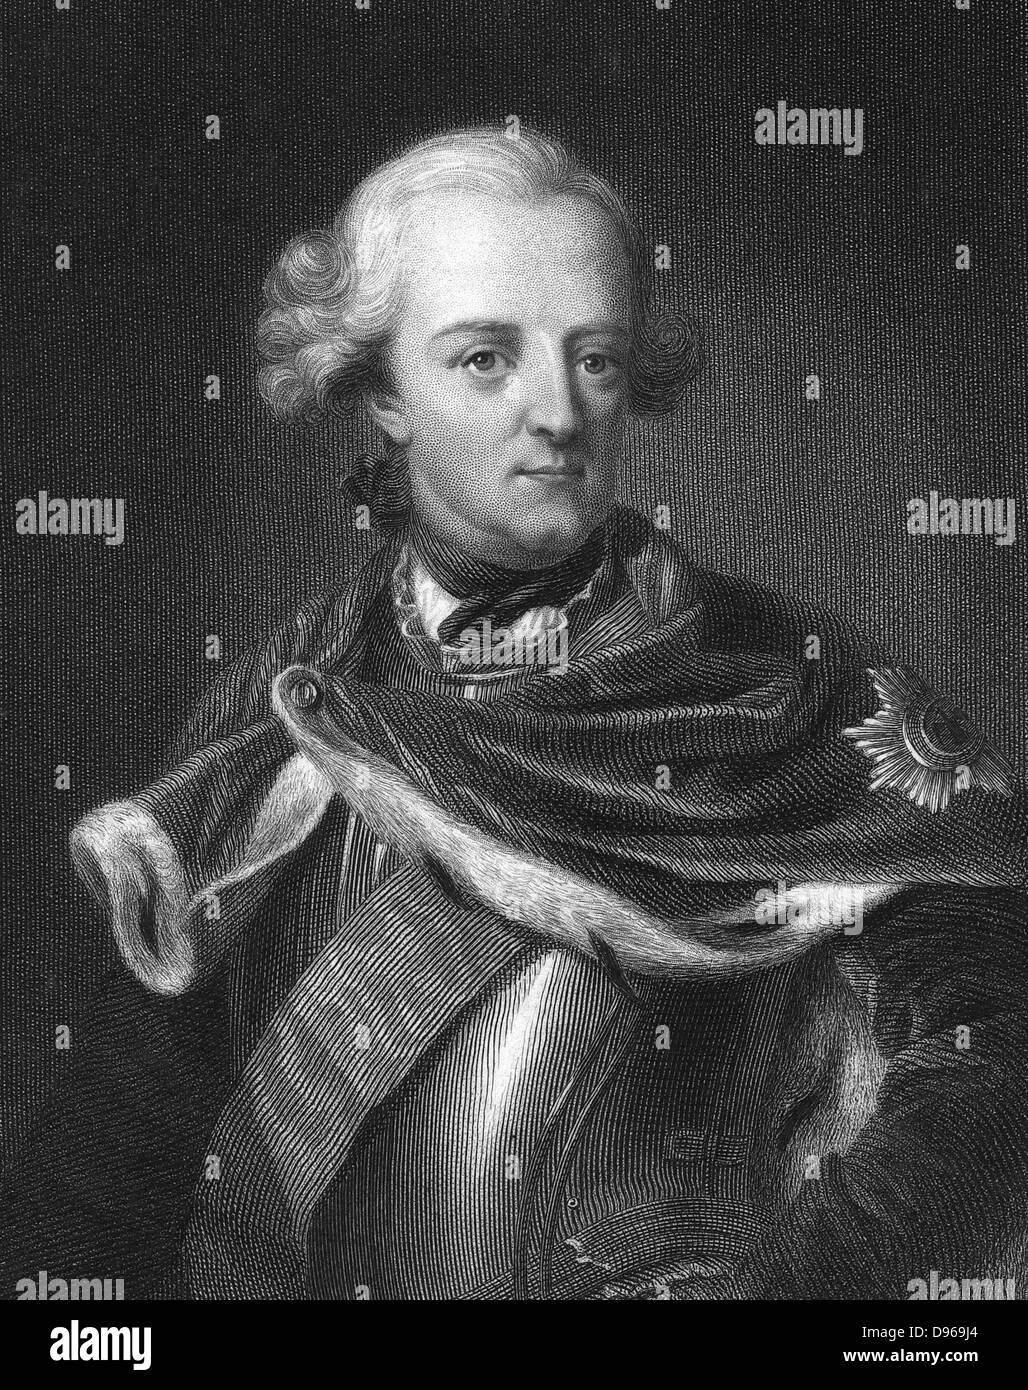 Frederick II, The Great (1712-1786) King of Prussia from 1740. Engraving - Stock Image